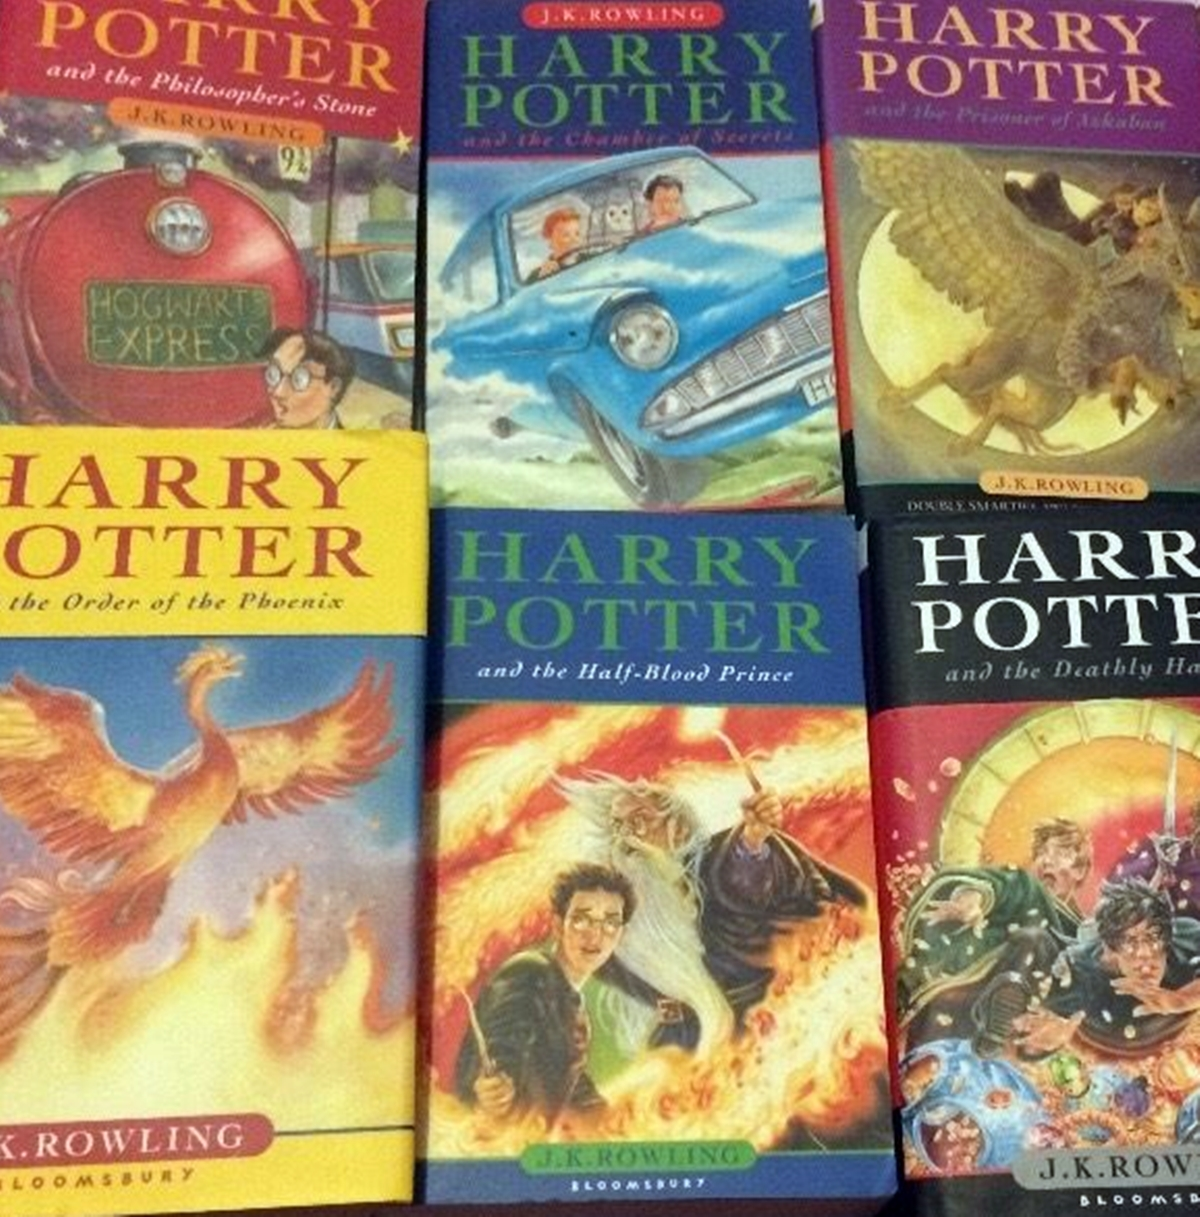 2 41 Are Your Harry Potter Books Worth A Lot Of Money? Here's How To Find Out!